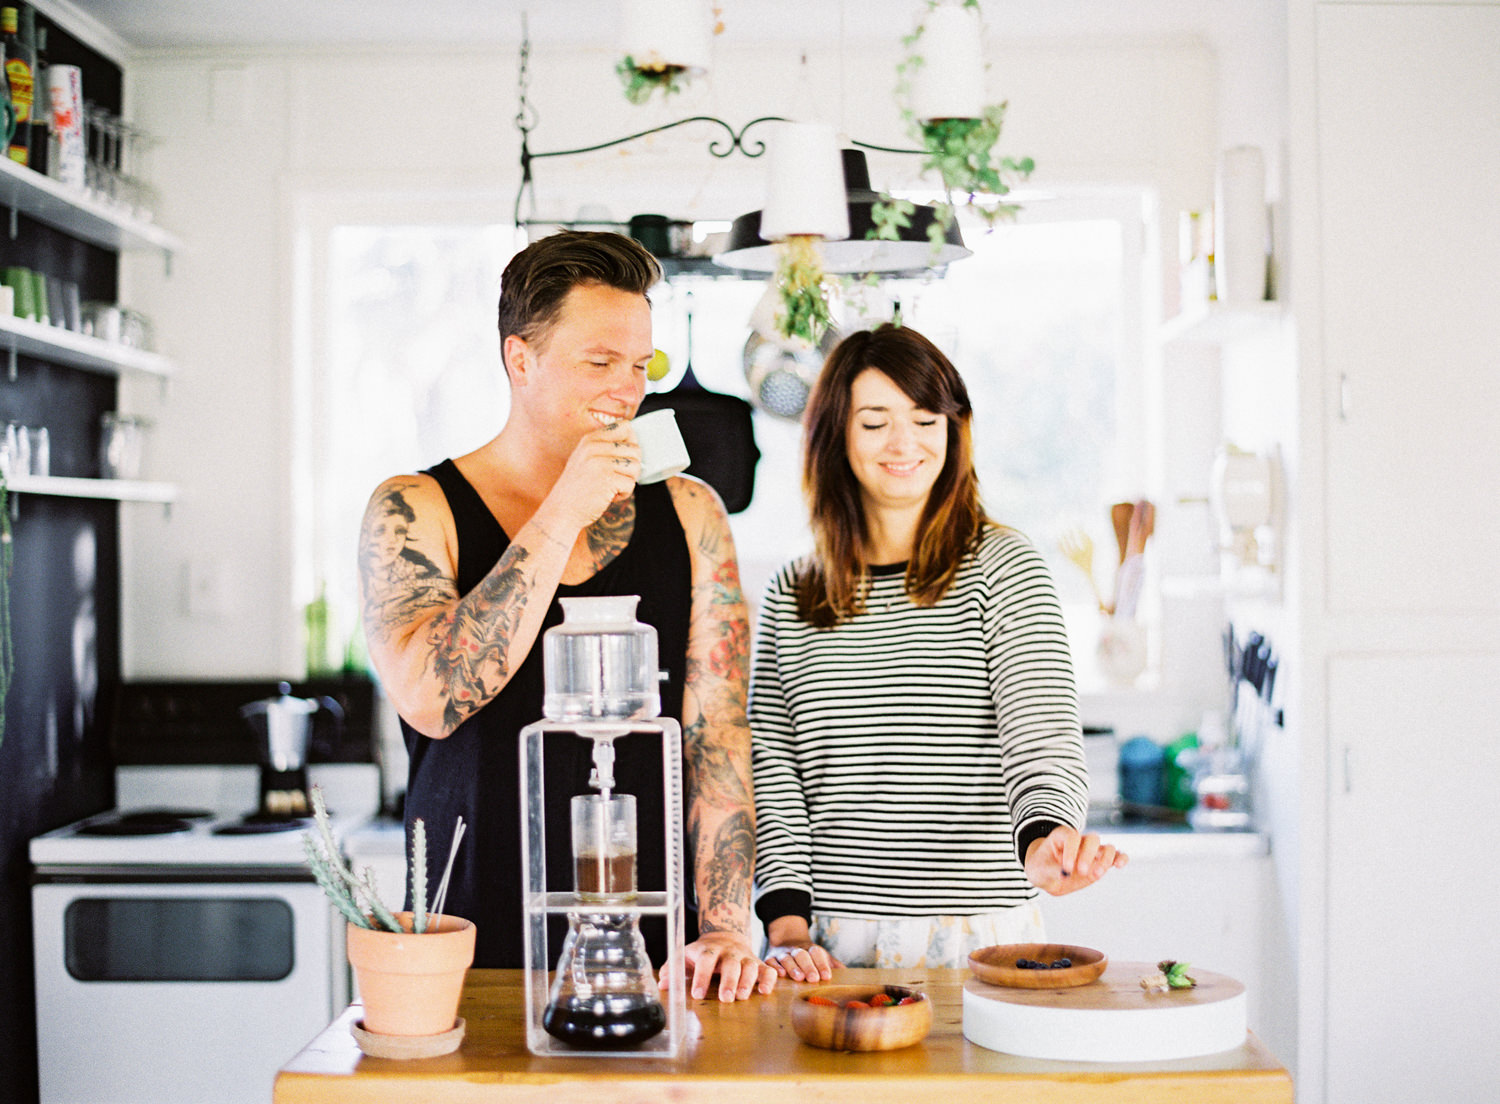 marionhphotography-marion_heurteboust-intimate_wedding_photographer-chemex_coffee-at_home-papamoa-tauranga_new_zealand